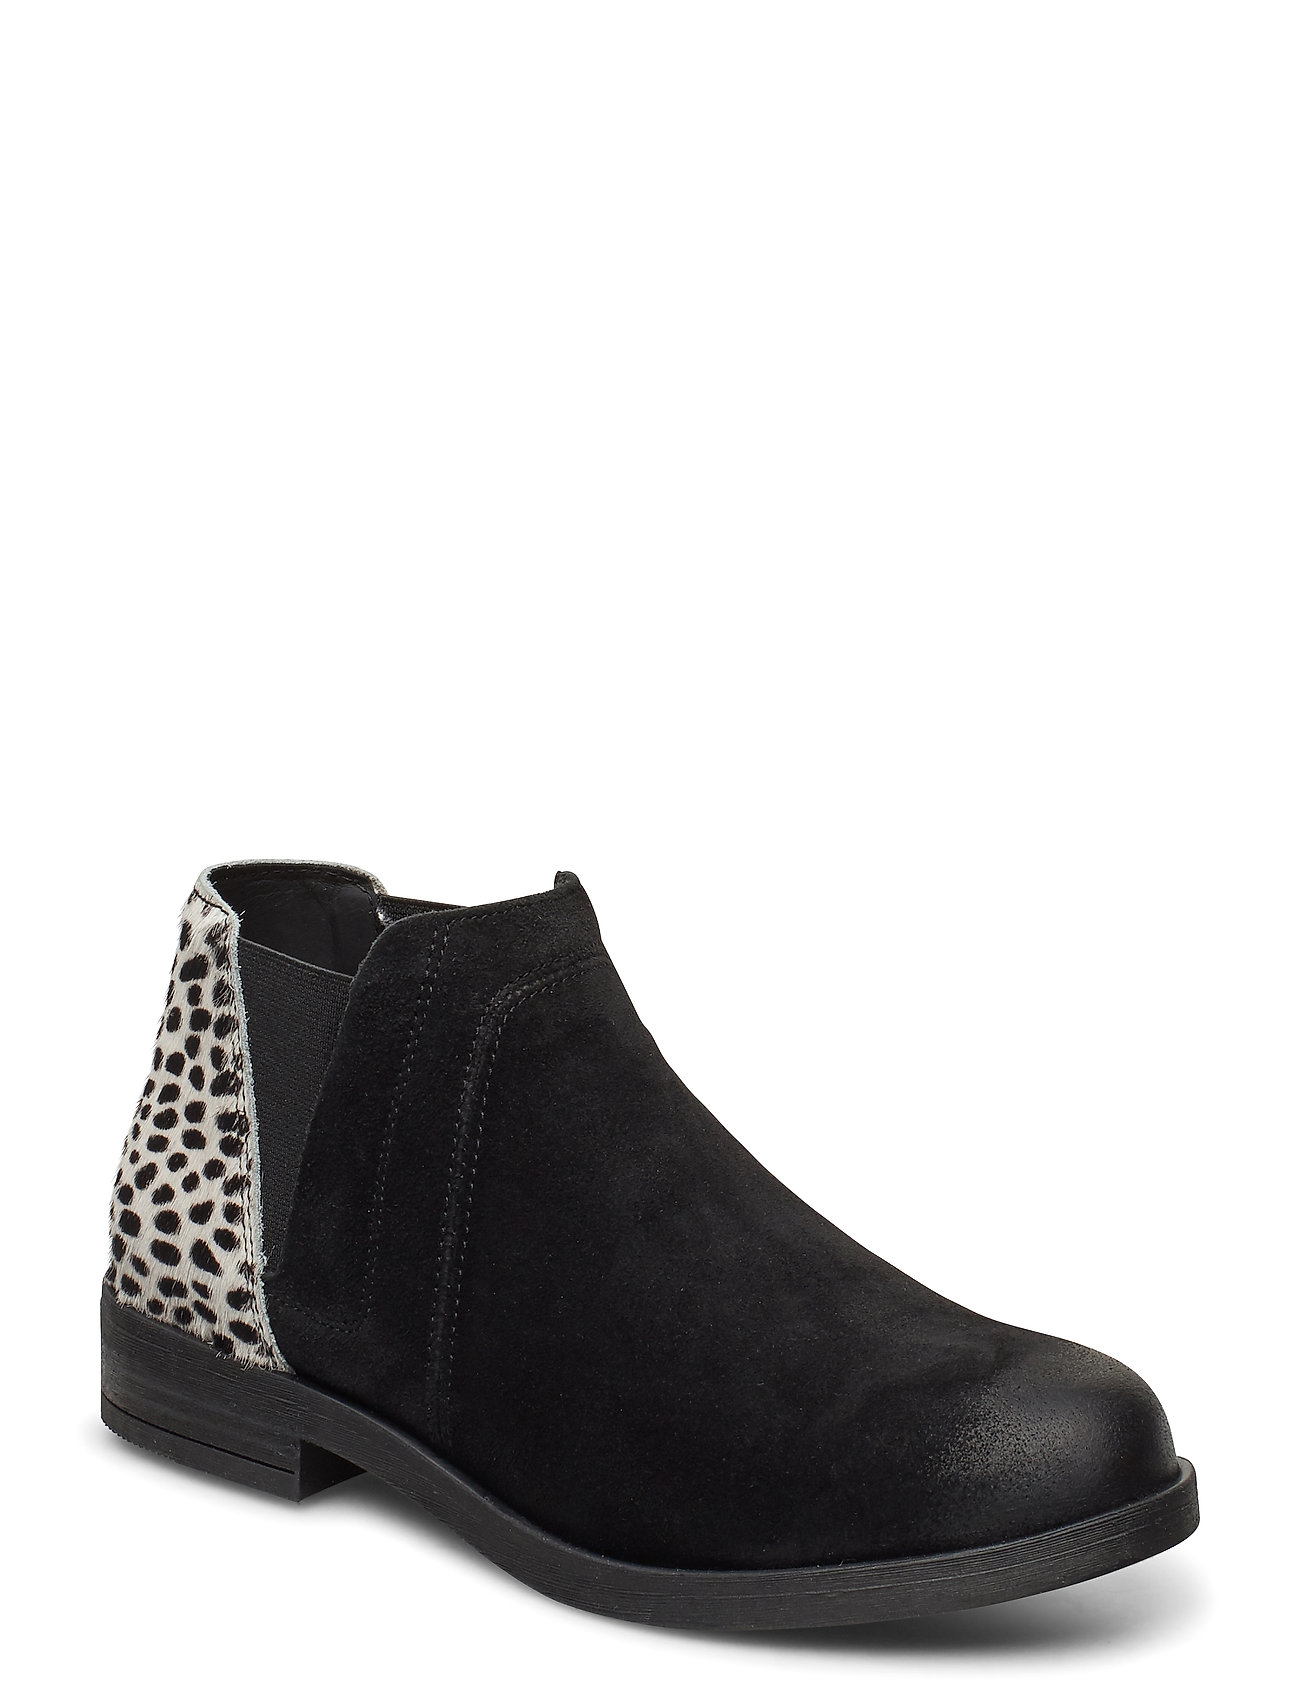 Image of Demi2 Beat Shoes Boots Ankle Boots Ankle Boot - Flat Sort Clarks (3436043997)